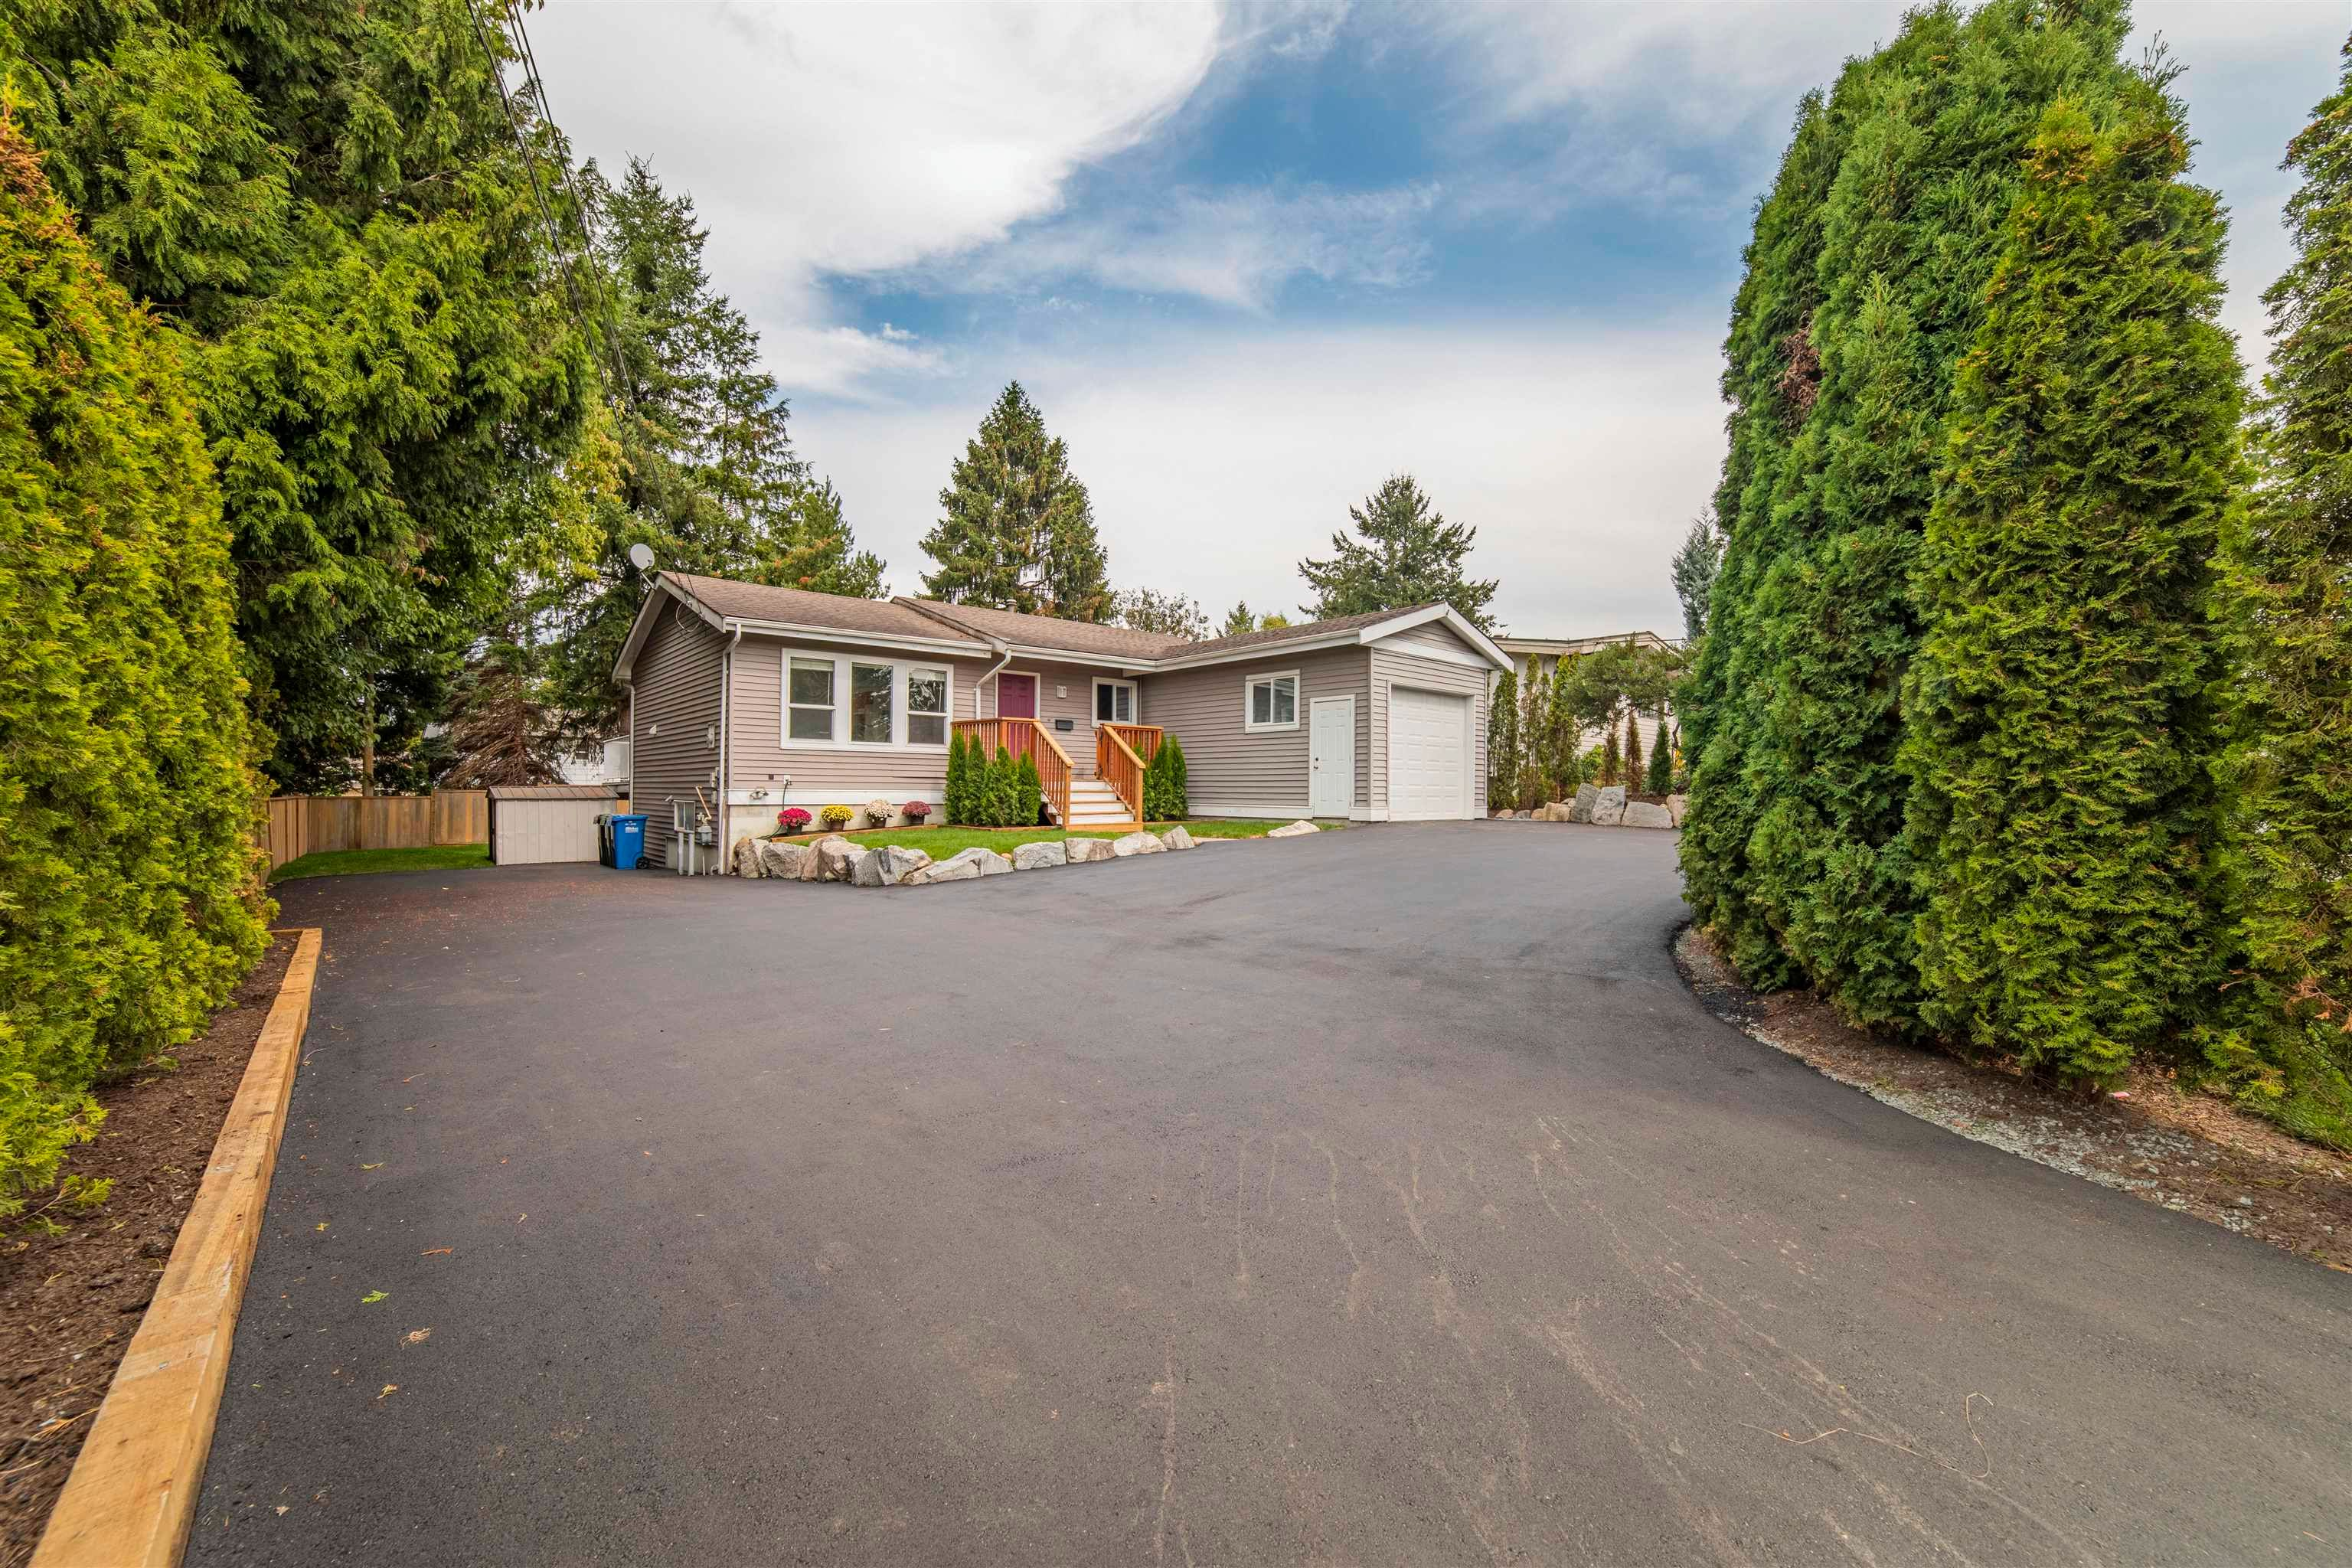 Main Photo: 34649 MARSHALL Road in Abbotsford: Central Abbotsford House for sale : MLS®# R2615515